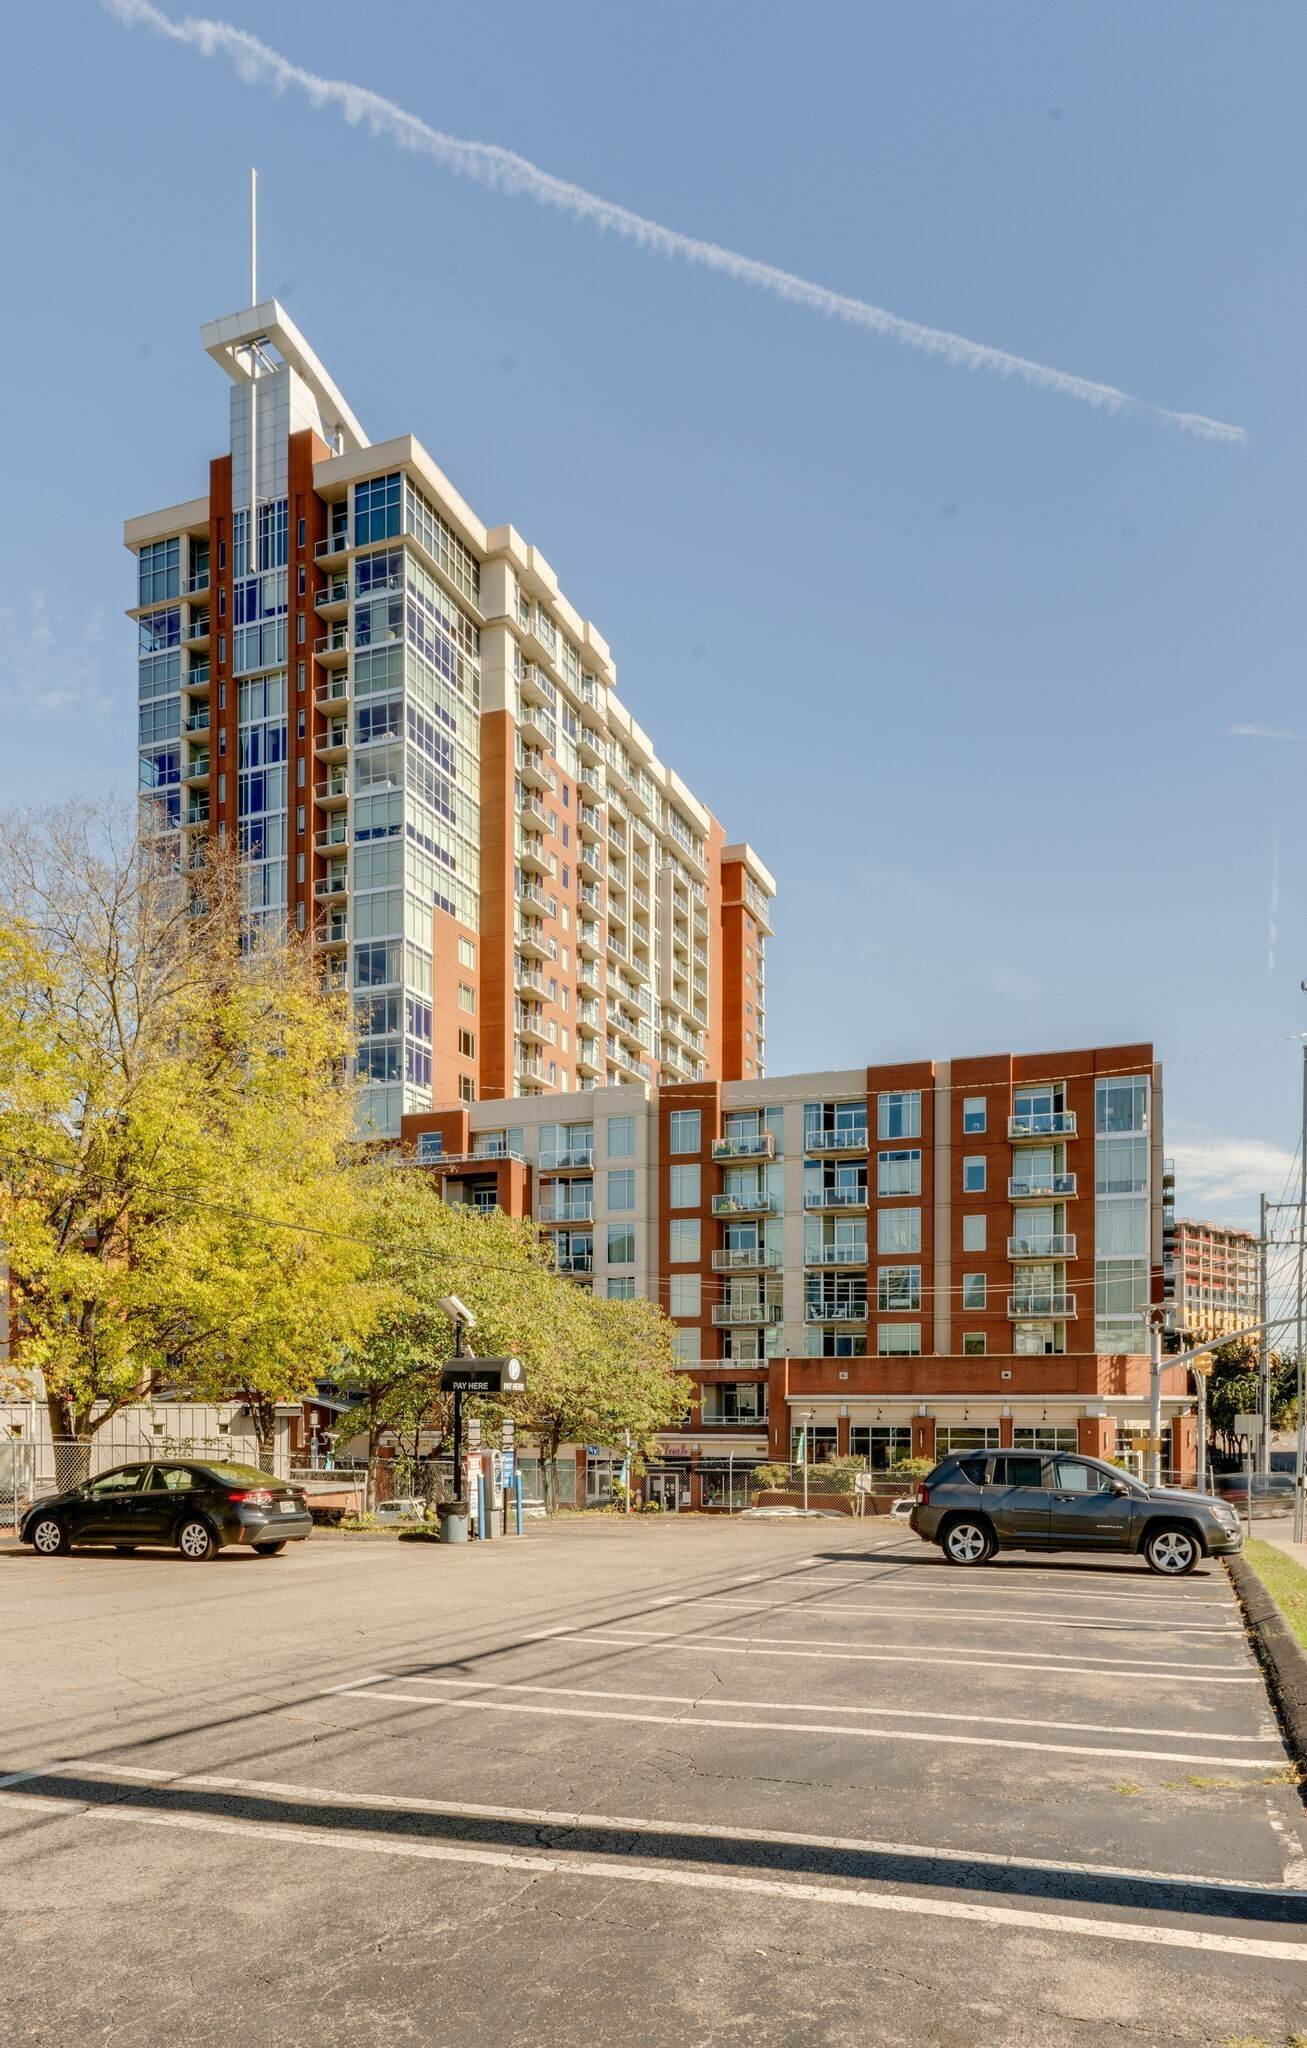 16. High Rise for Sale at 600 12th Ave, S Nashville, Tennessee 37203 United States